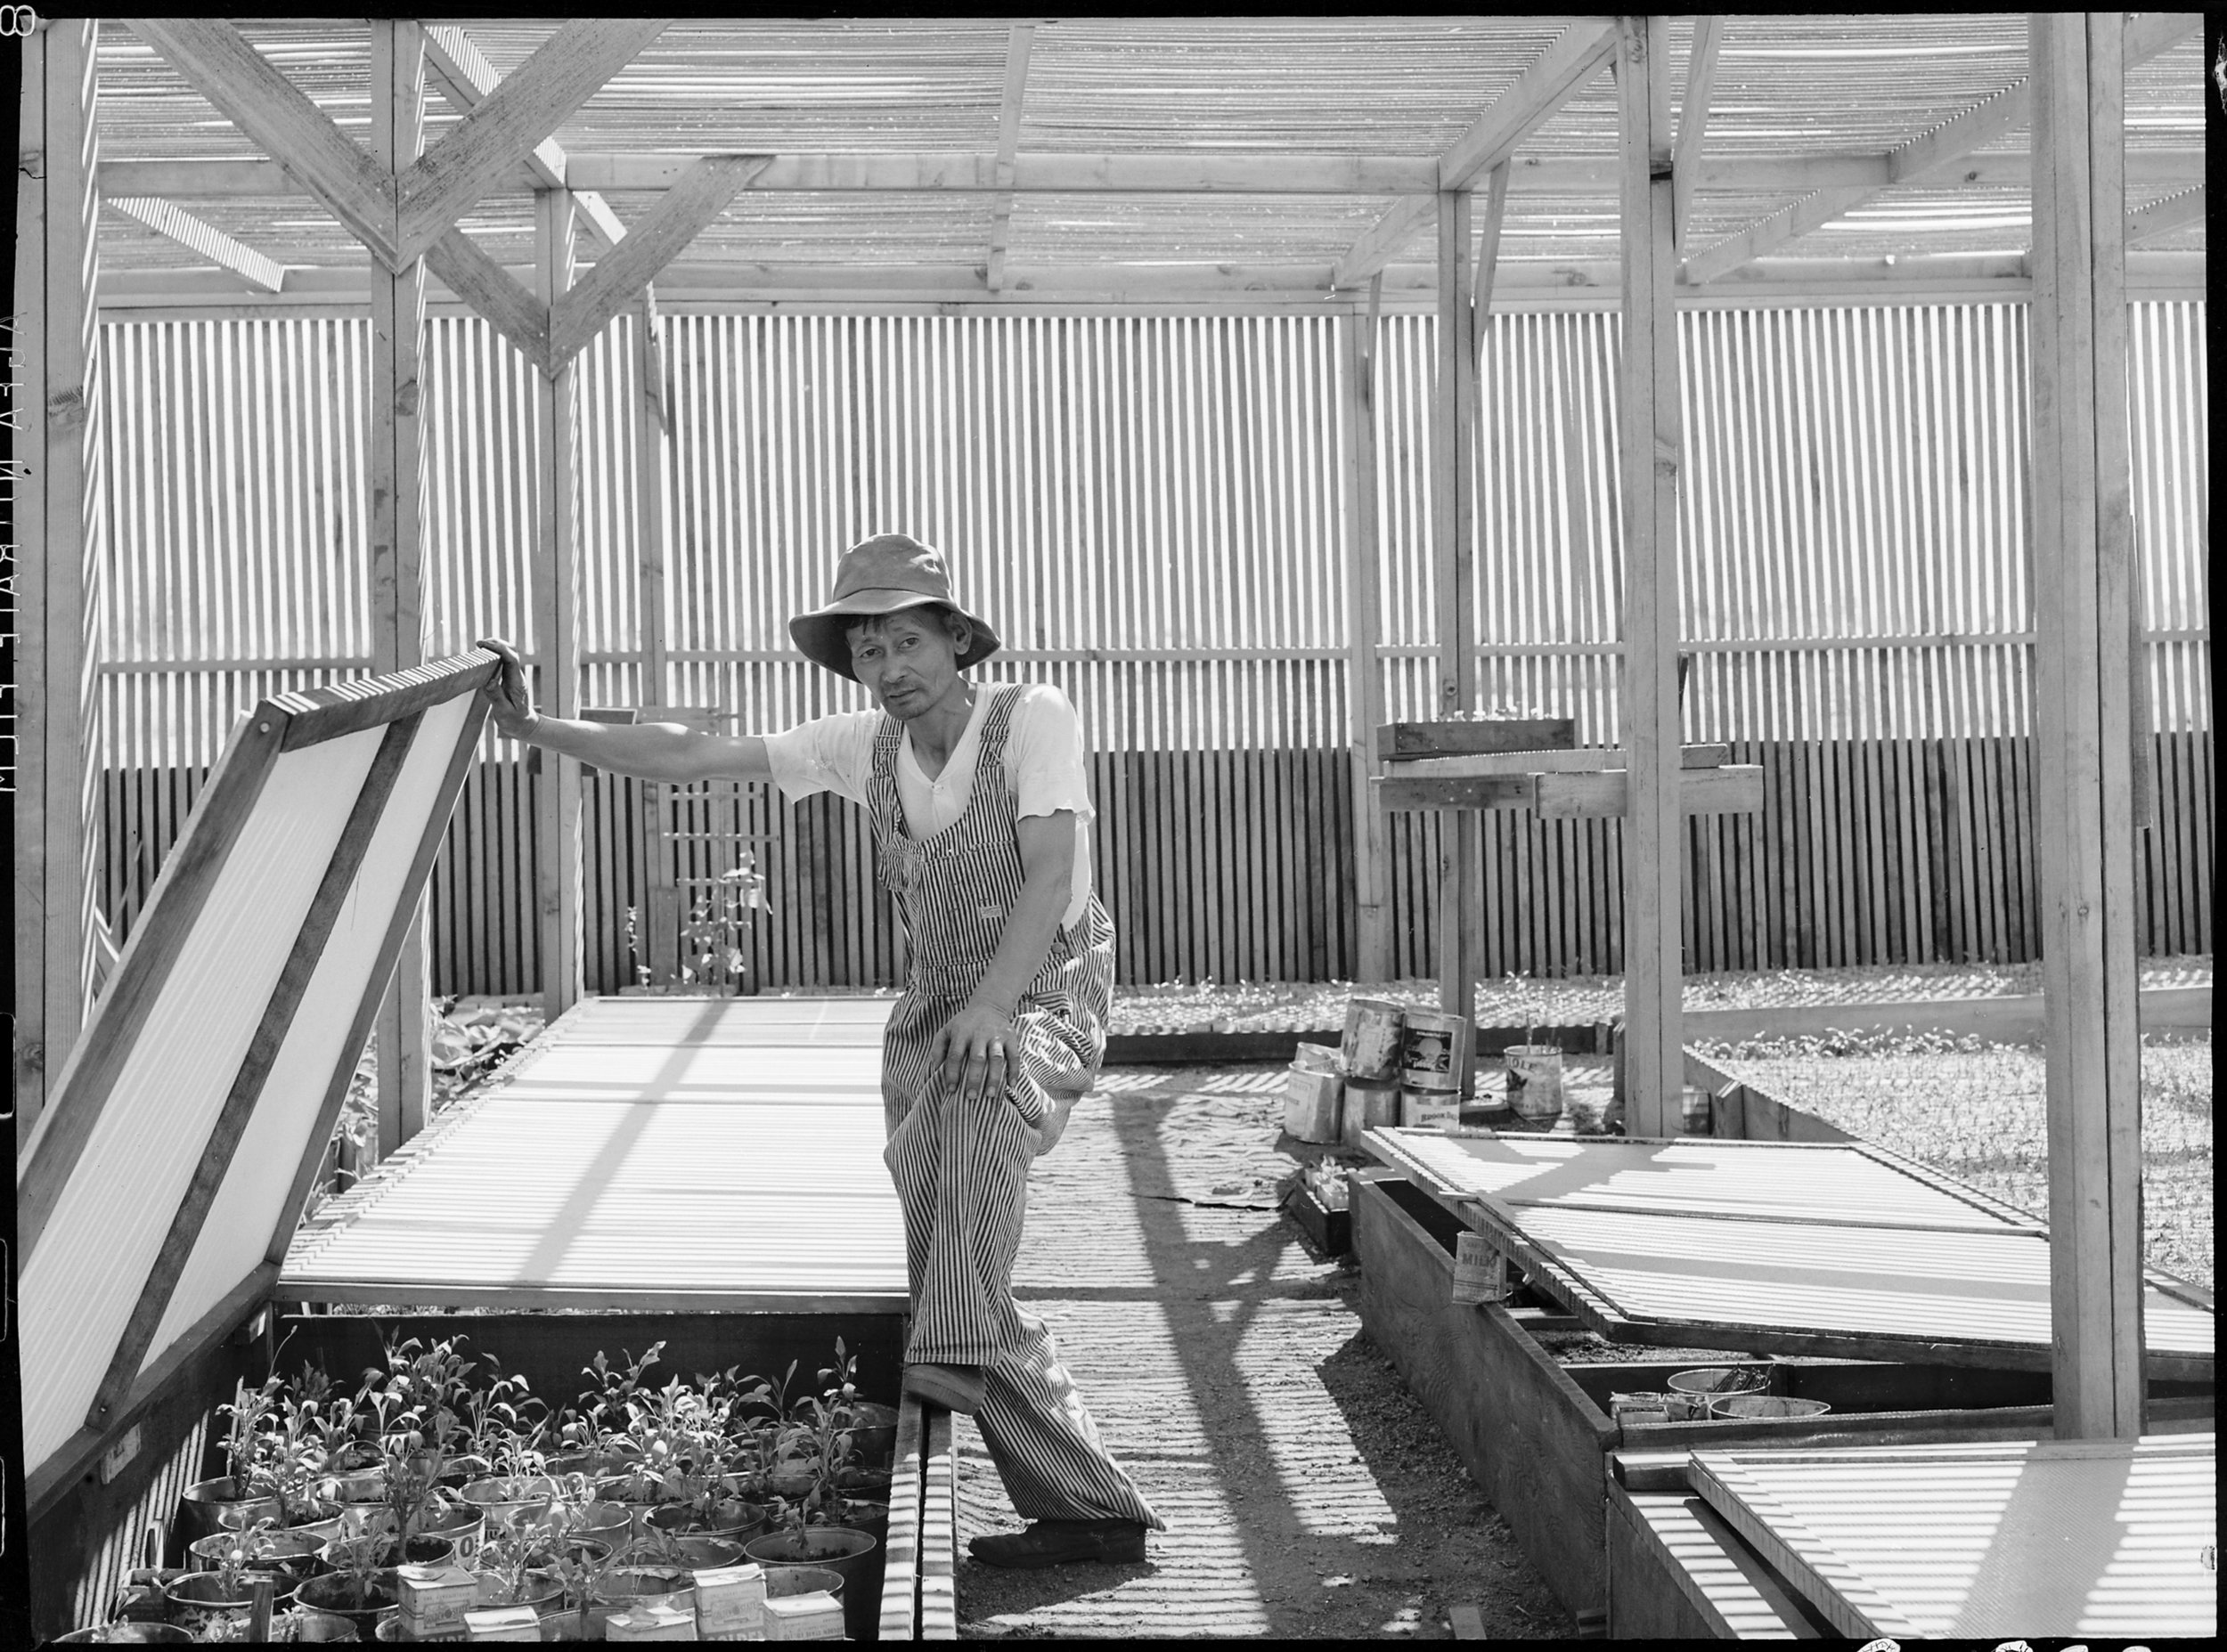 PRINT AVAILABLE June 28, 1942 — Manzanar Relocation Center, Manzanar, California. Guayule beds in the lath house at the Manzanar Relocation Center.